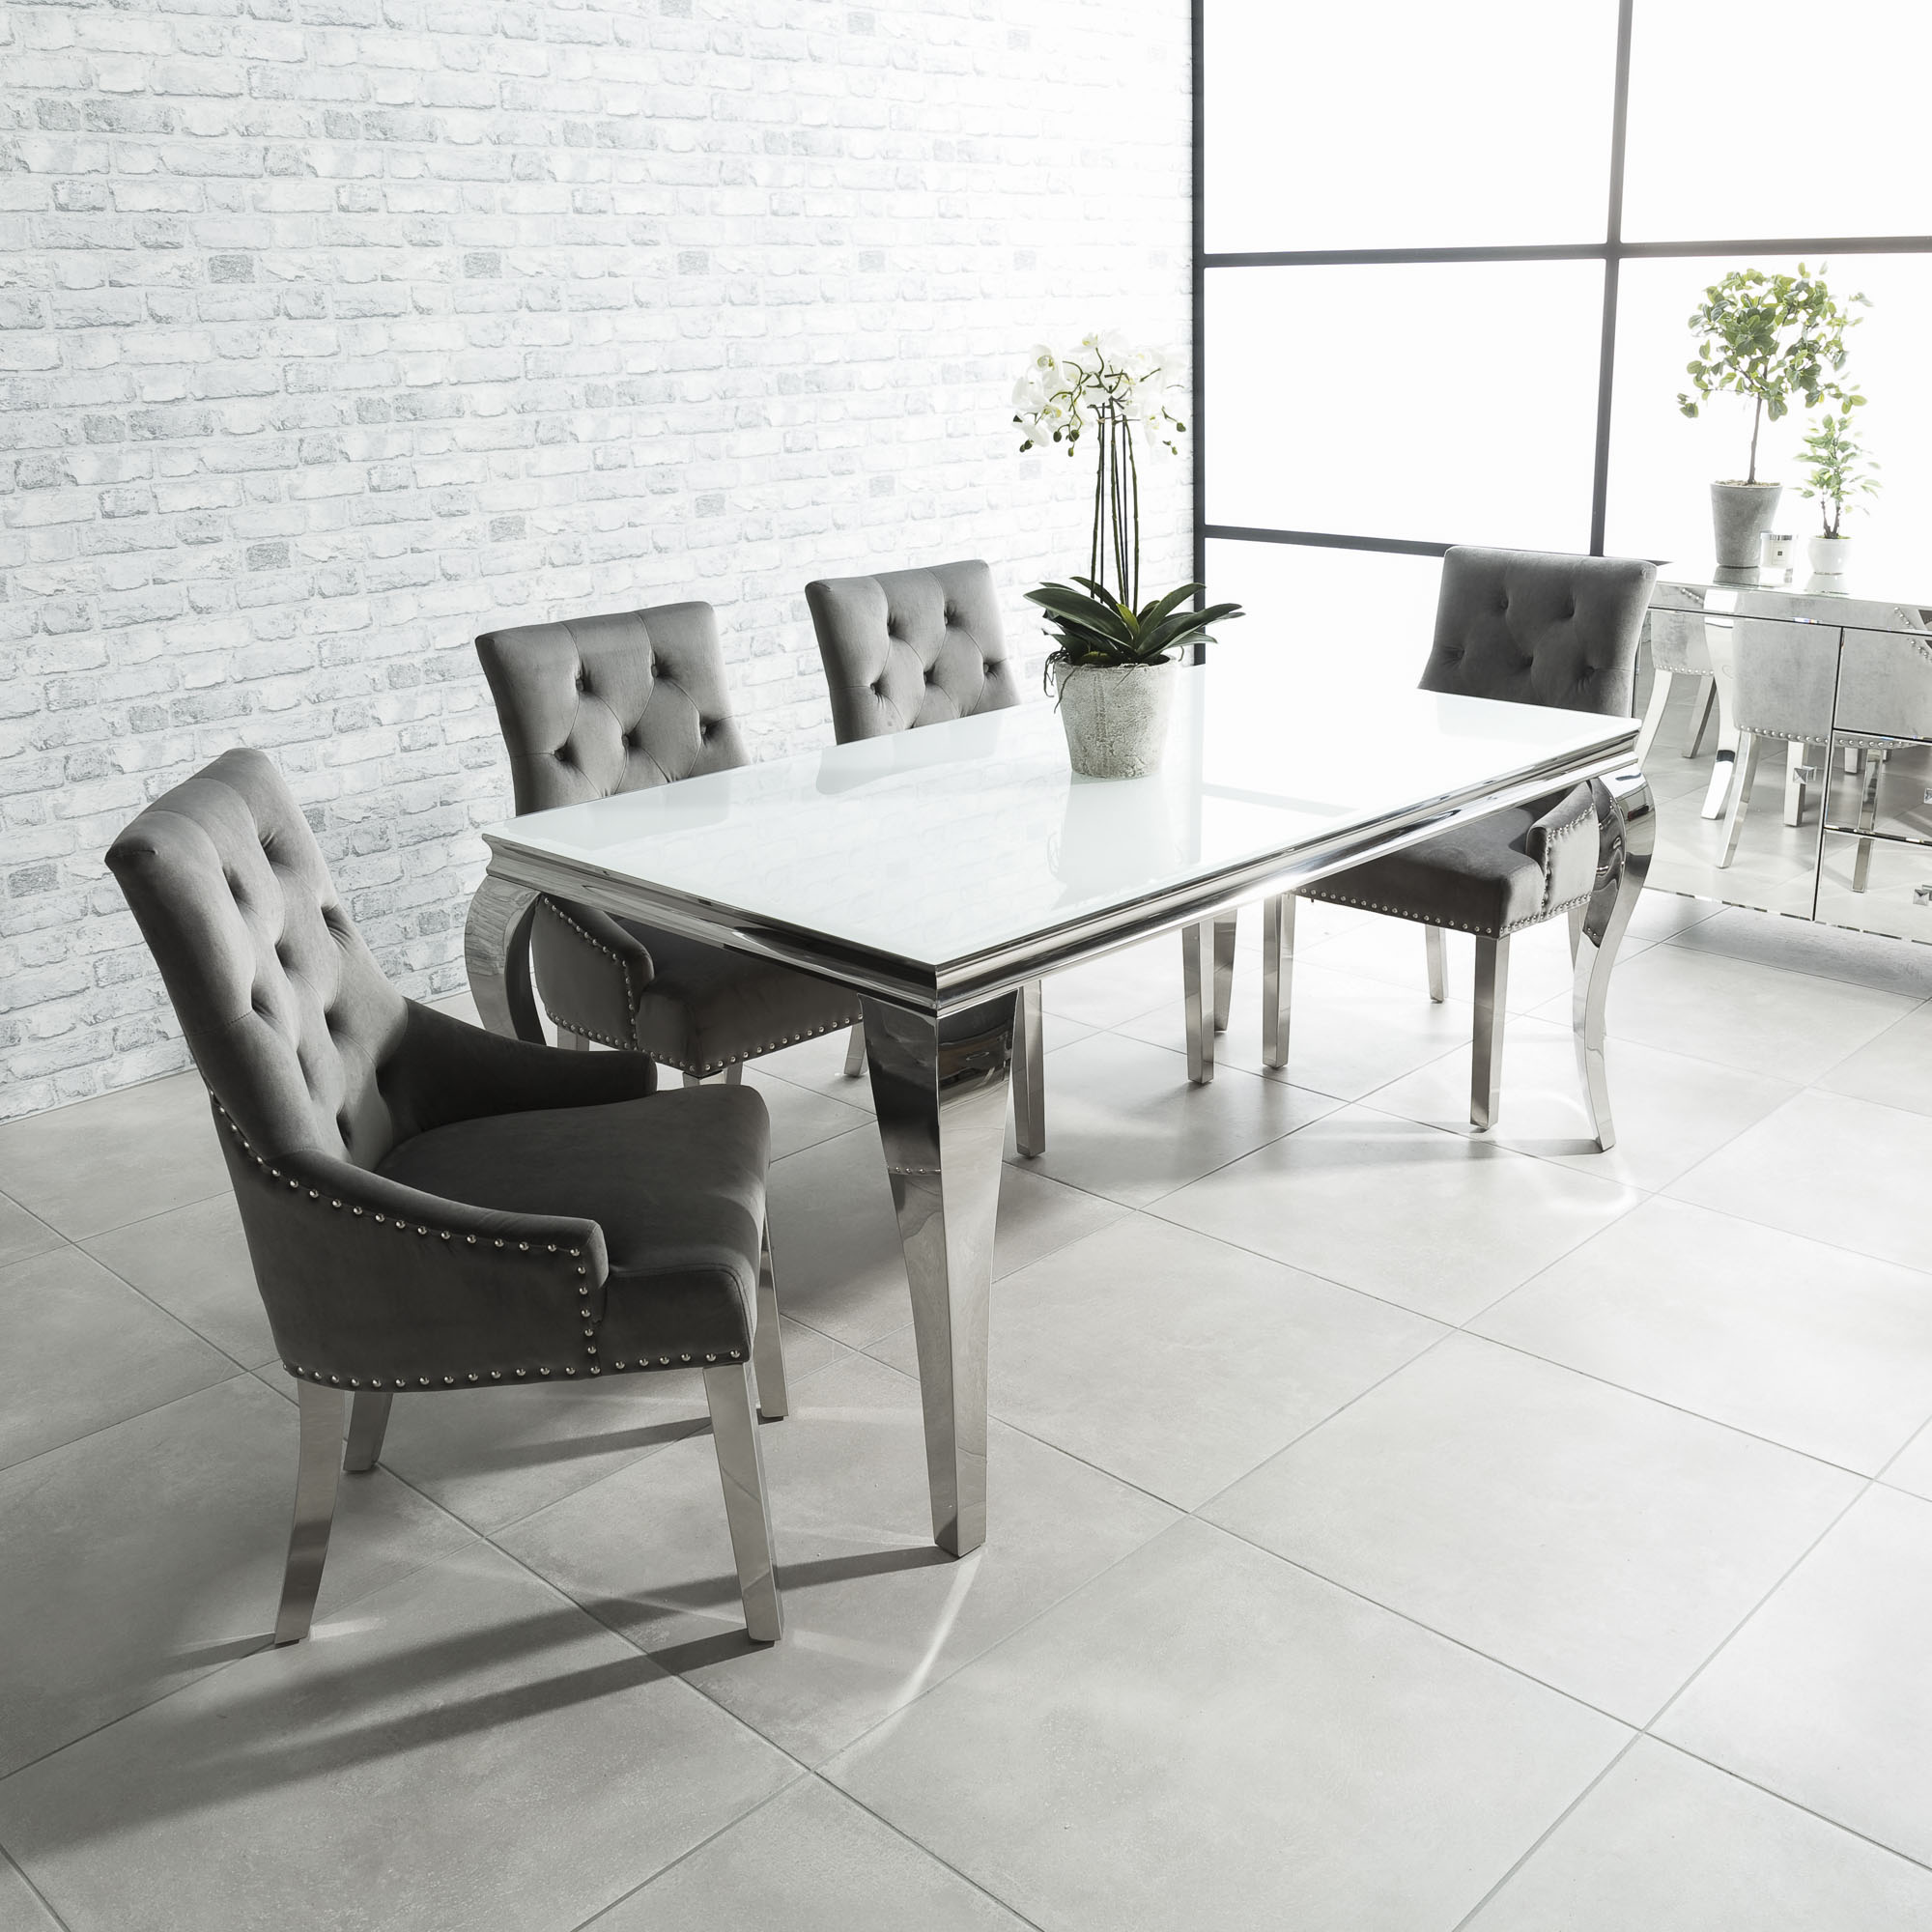 2cfebbec32 2m Louis Polished Steel Dining White Glass Table Set with 6 Grey Brushed  Velvet Dining Chair